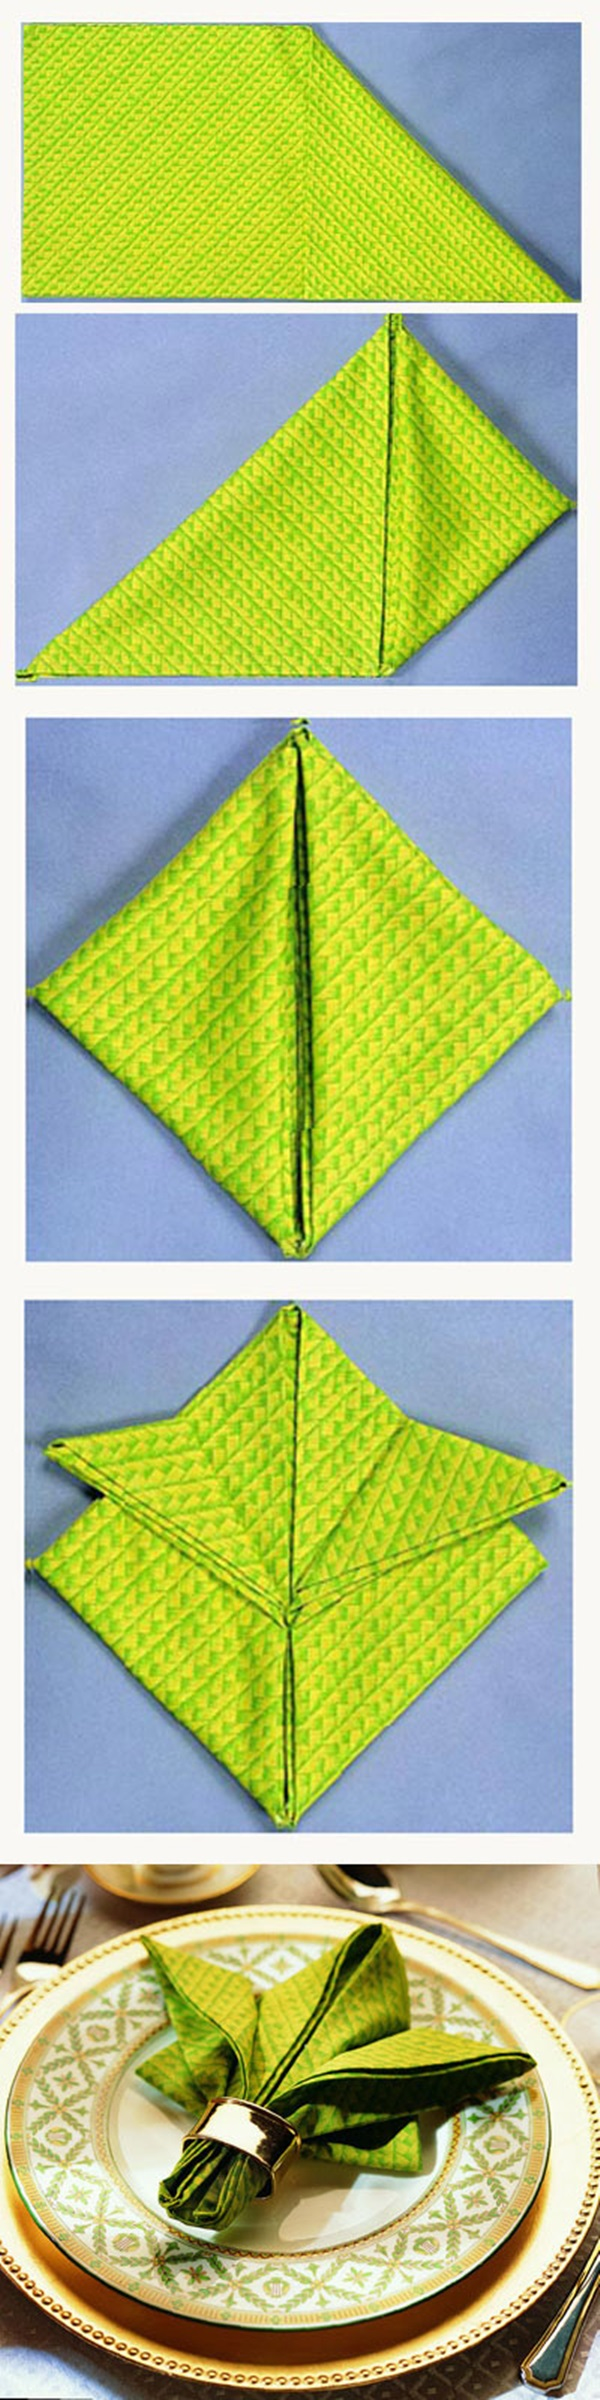 30 Creative Napkin Folding Ideas 9